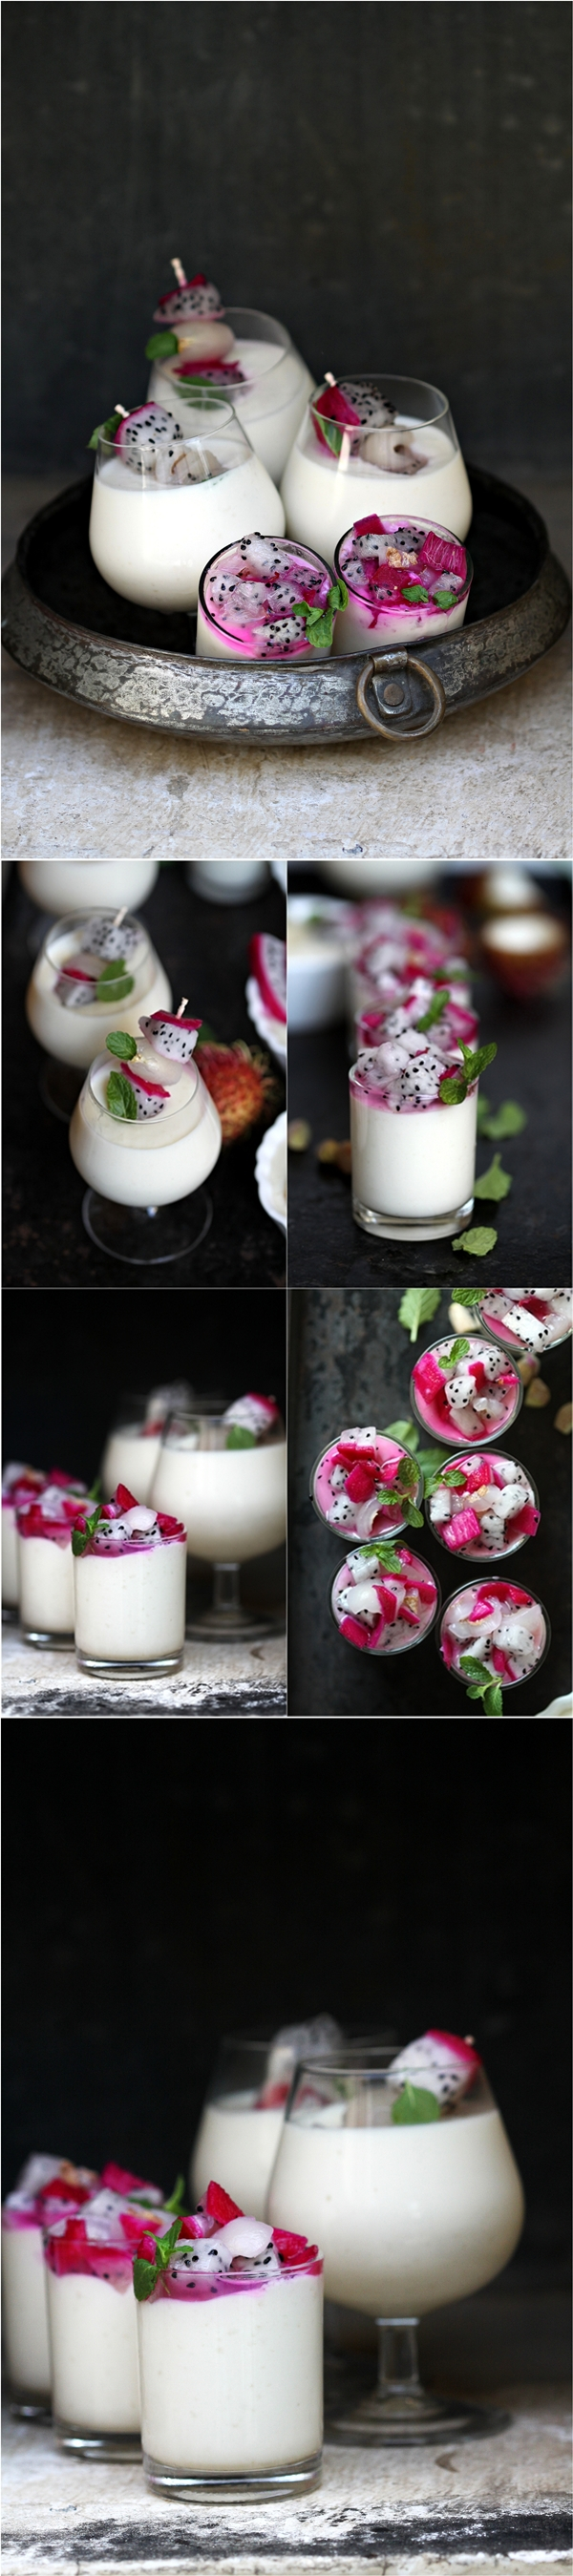 Tropical Coconut Milk Rice Pudding 7